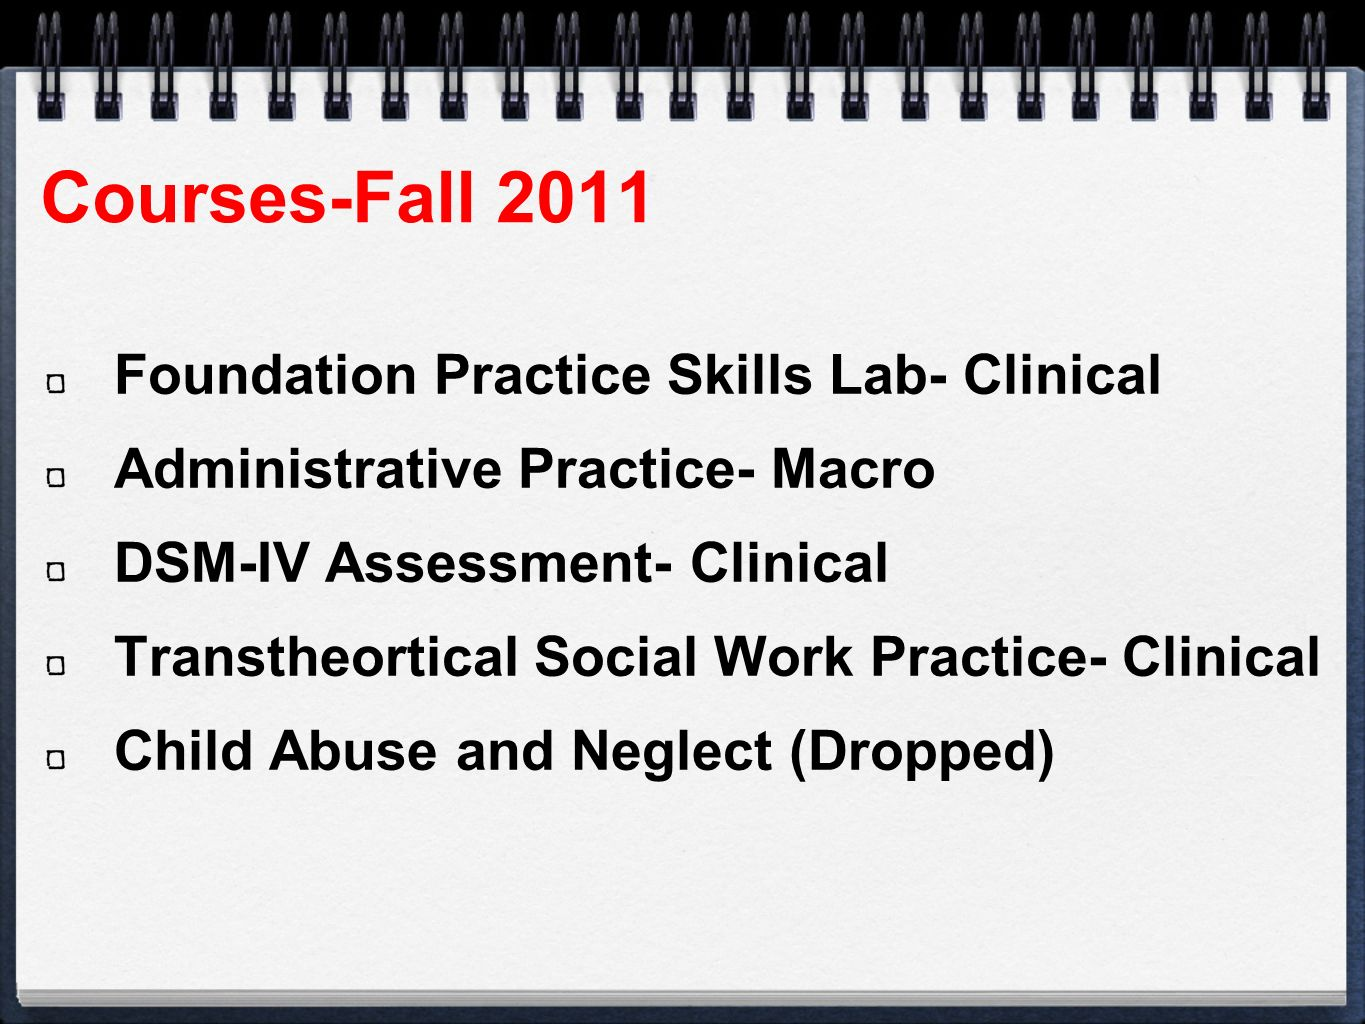 Courses-Fall 2011 Foundation Practice Skills Lab- Clinical Administrative Practice- Macro DSM-IV Assessment- Clinical Transtheortical Social Work Practice- Clinical Child Abuse and Neglect (Dropped)